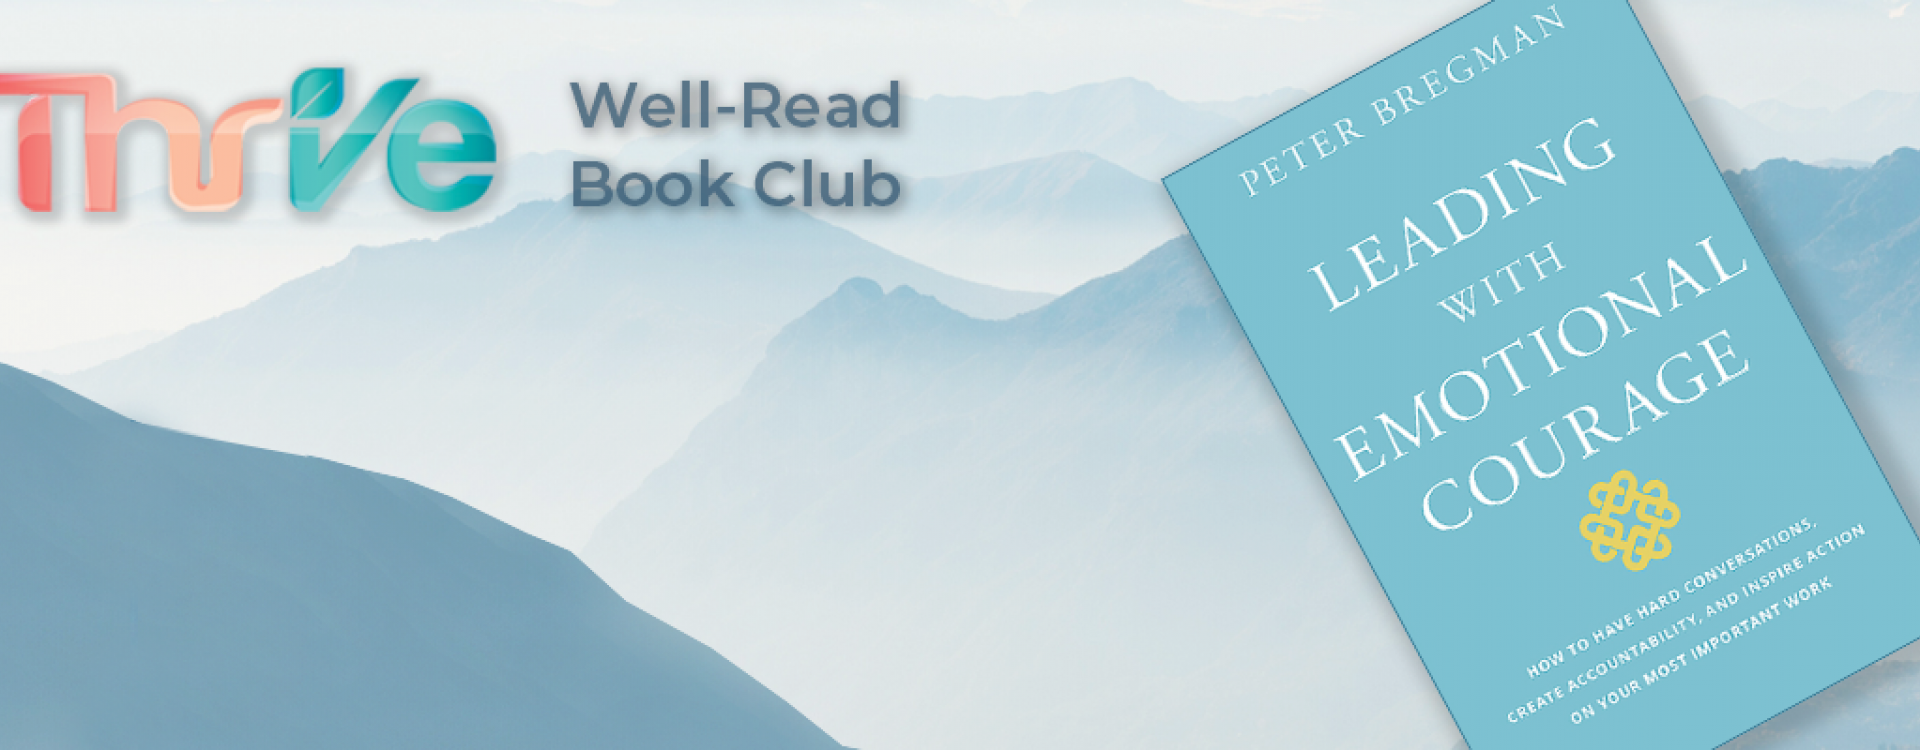 Thrive Well-Read Book Club